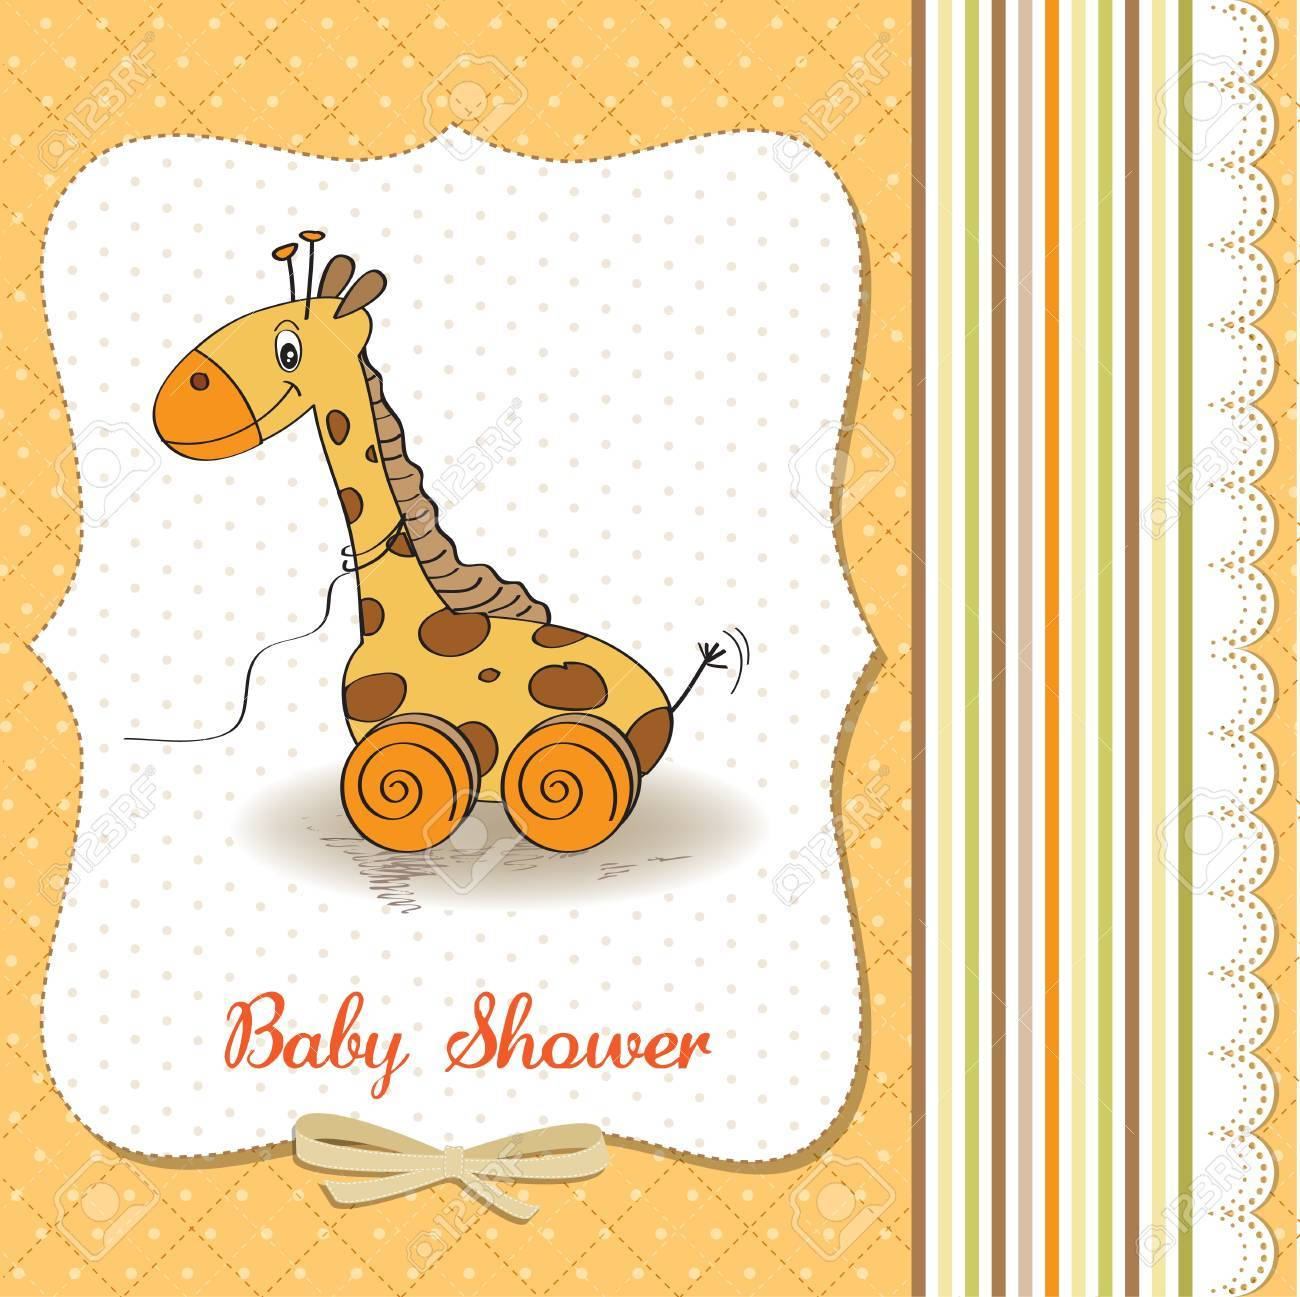 Baby shower card with cute giraffe toy, vector illustration Stock Vector - 18117766